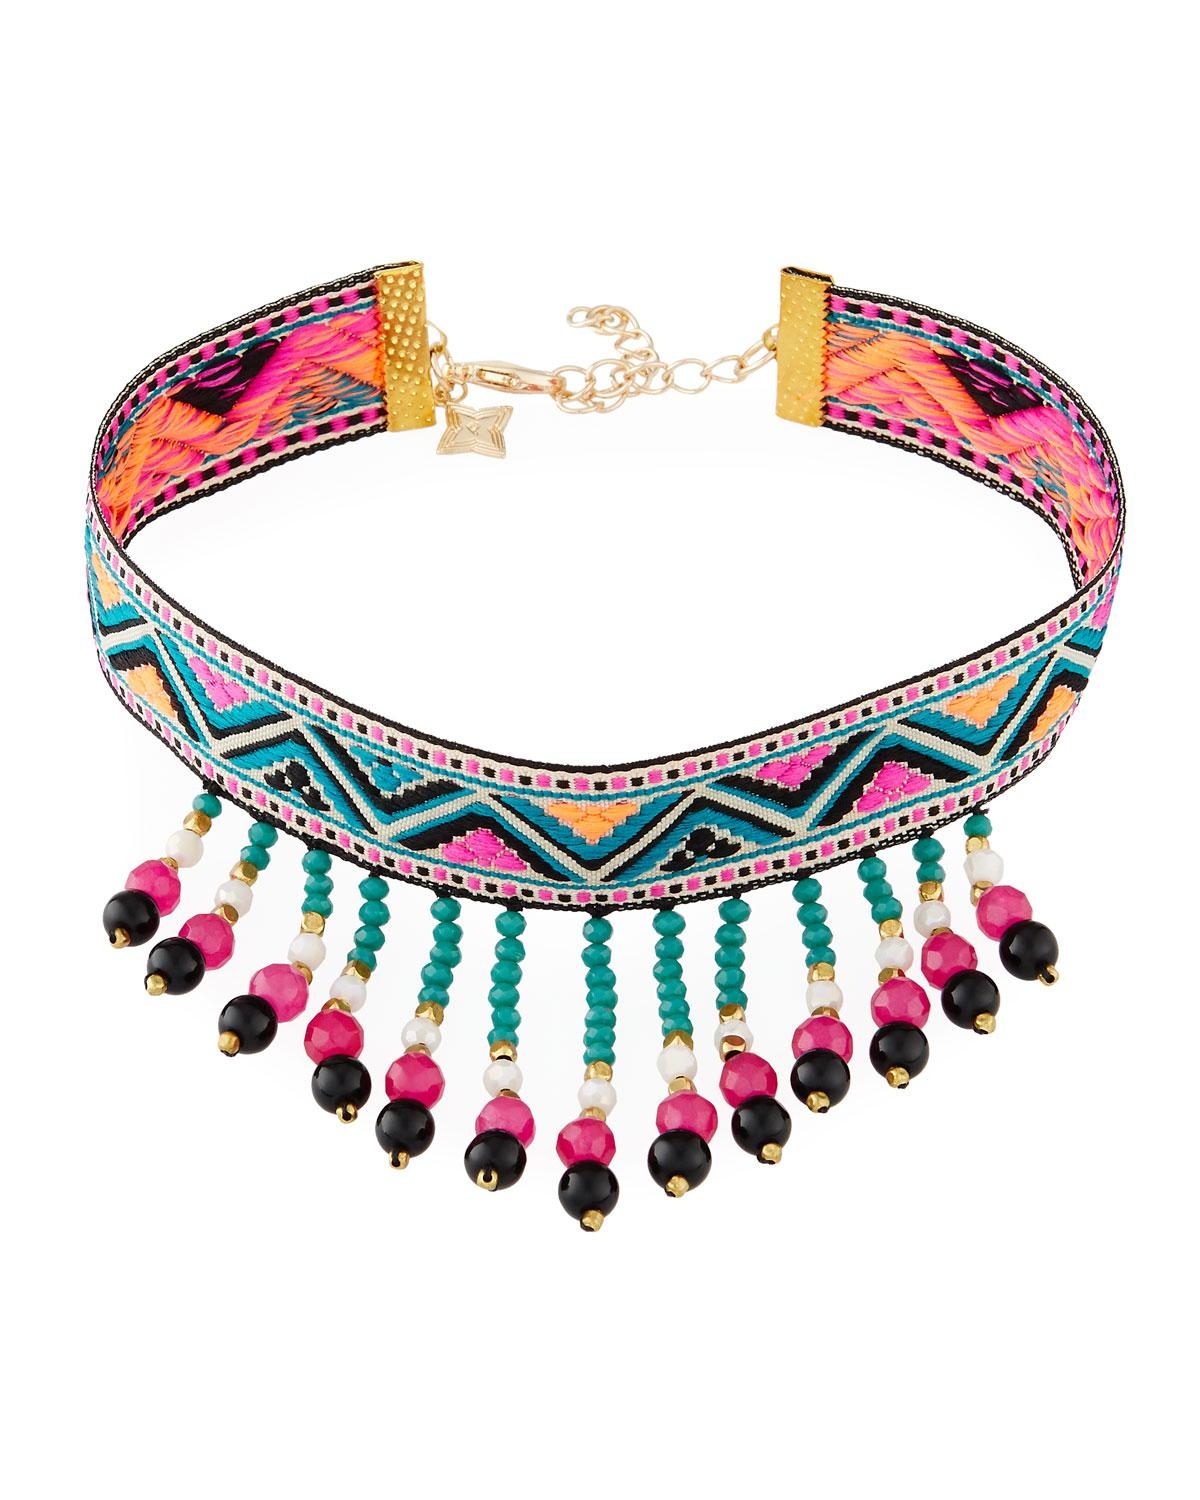 Panacea Blue Woven Beaded Fringe Choker Necklace With Latest Woven Fabric Choker Slider Necklaces (View 16 of 25)